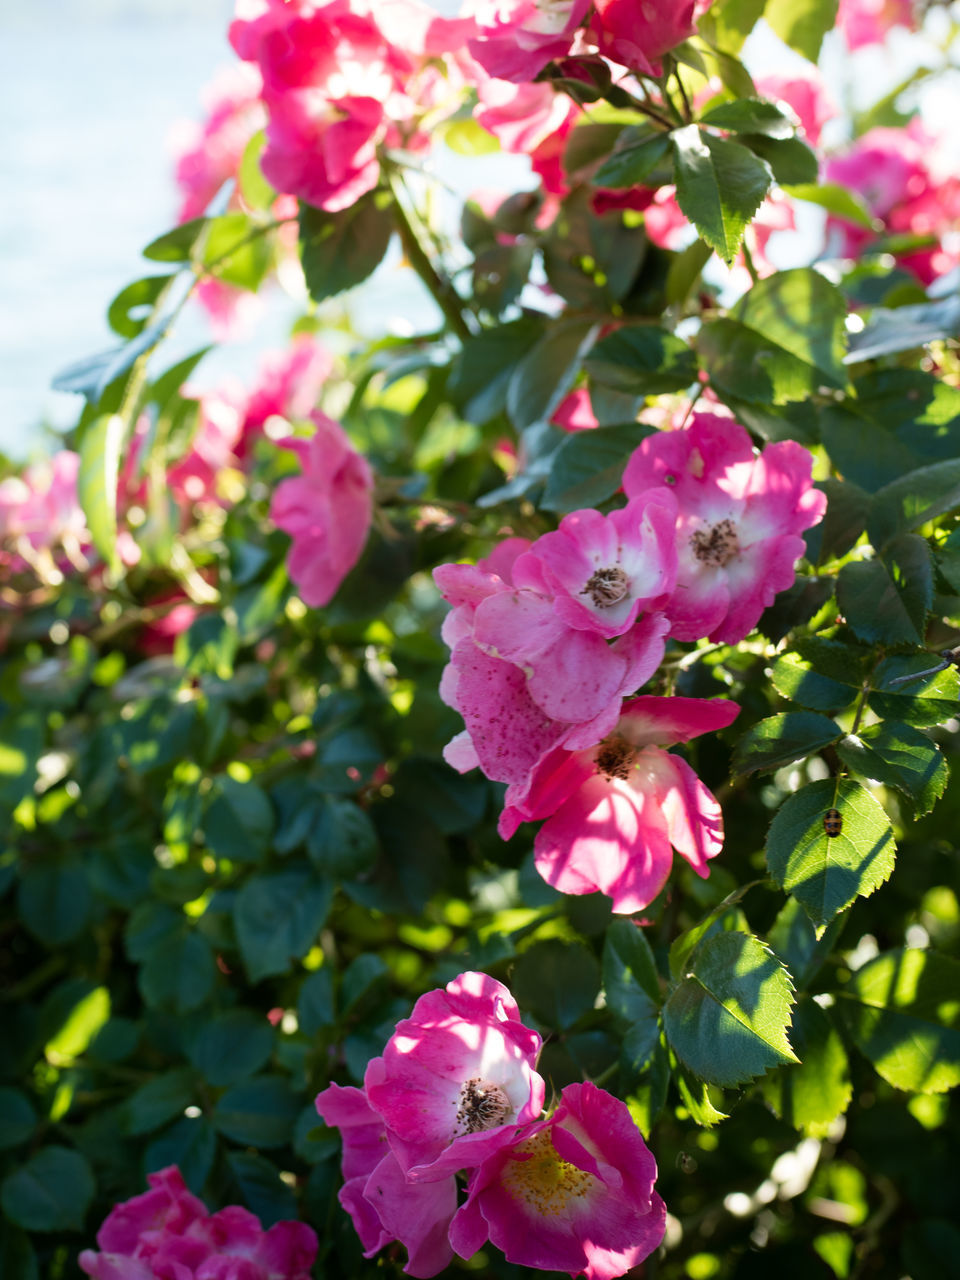 CLOSE-UP OF PINK ROSE FLOWERING PLANT